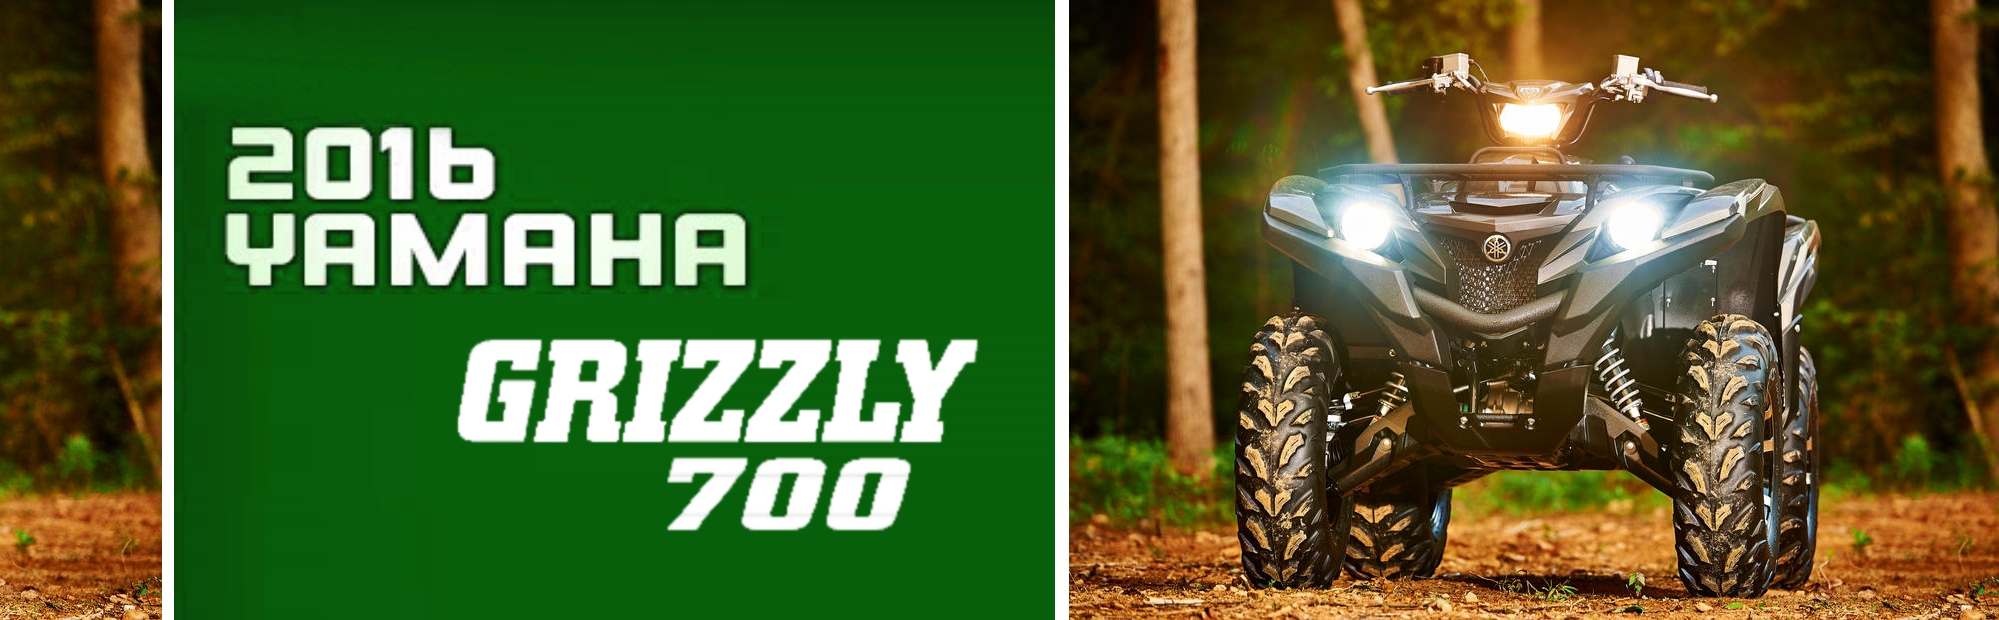 Grizzly 700 2016